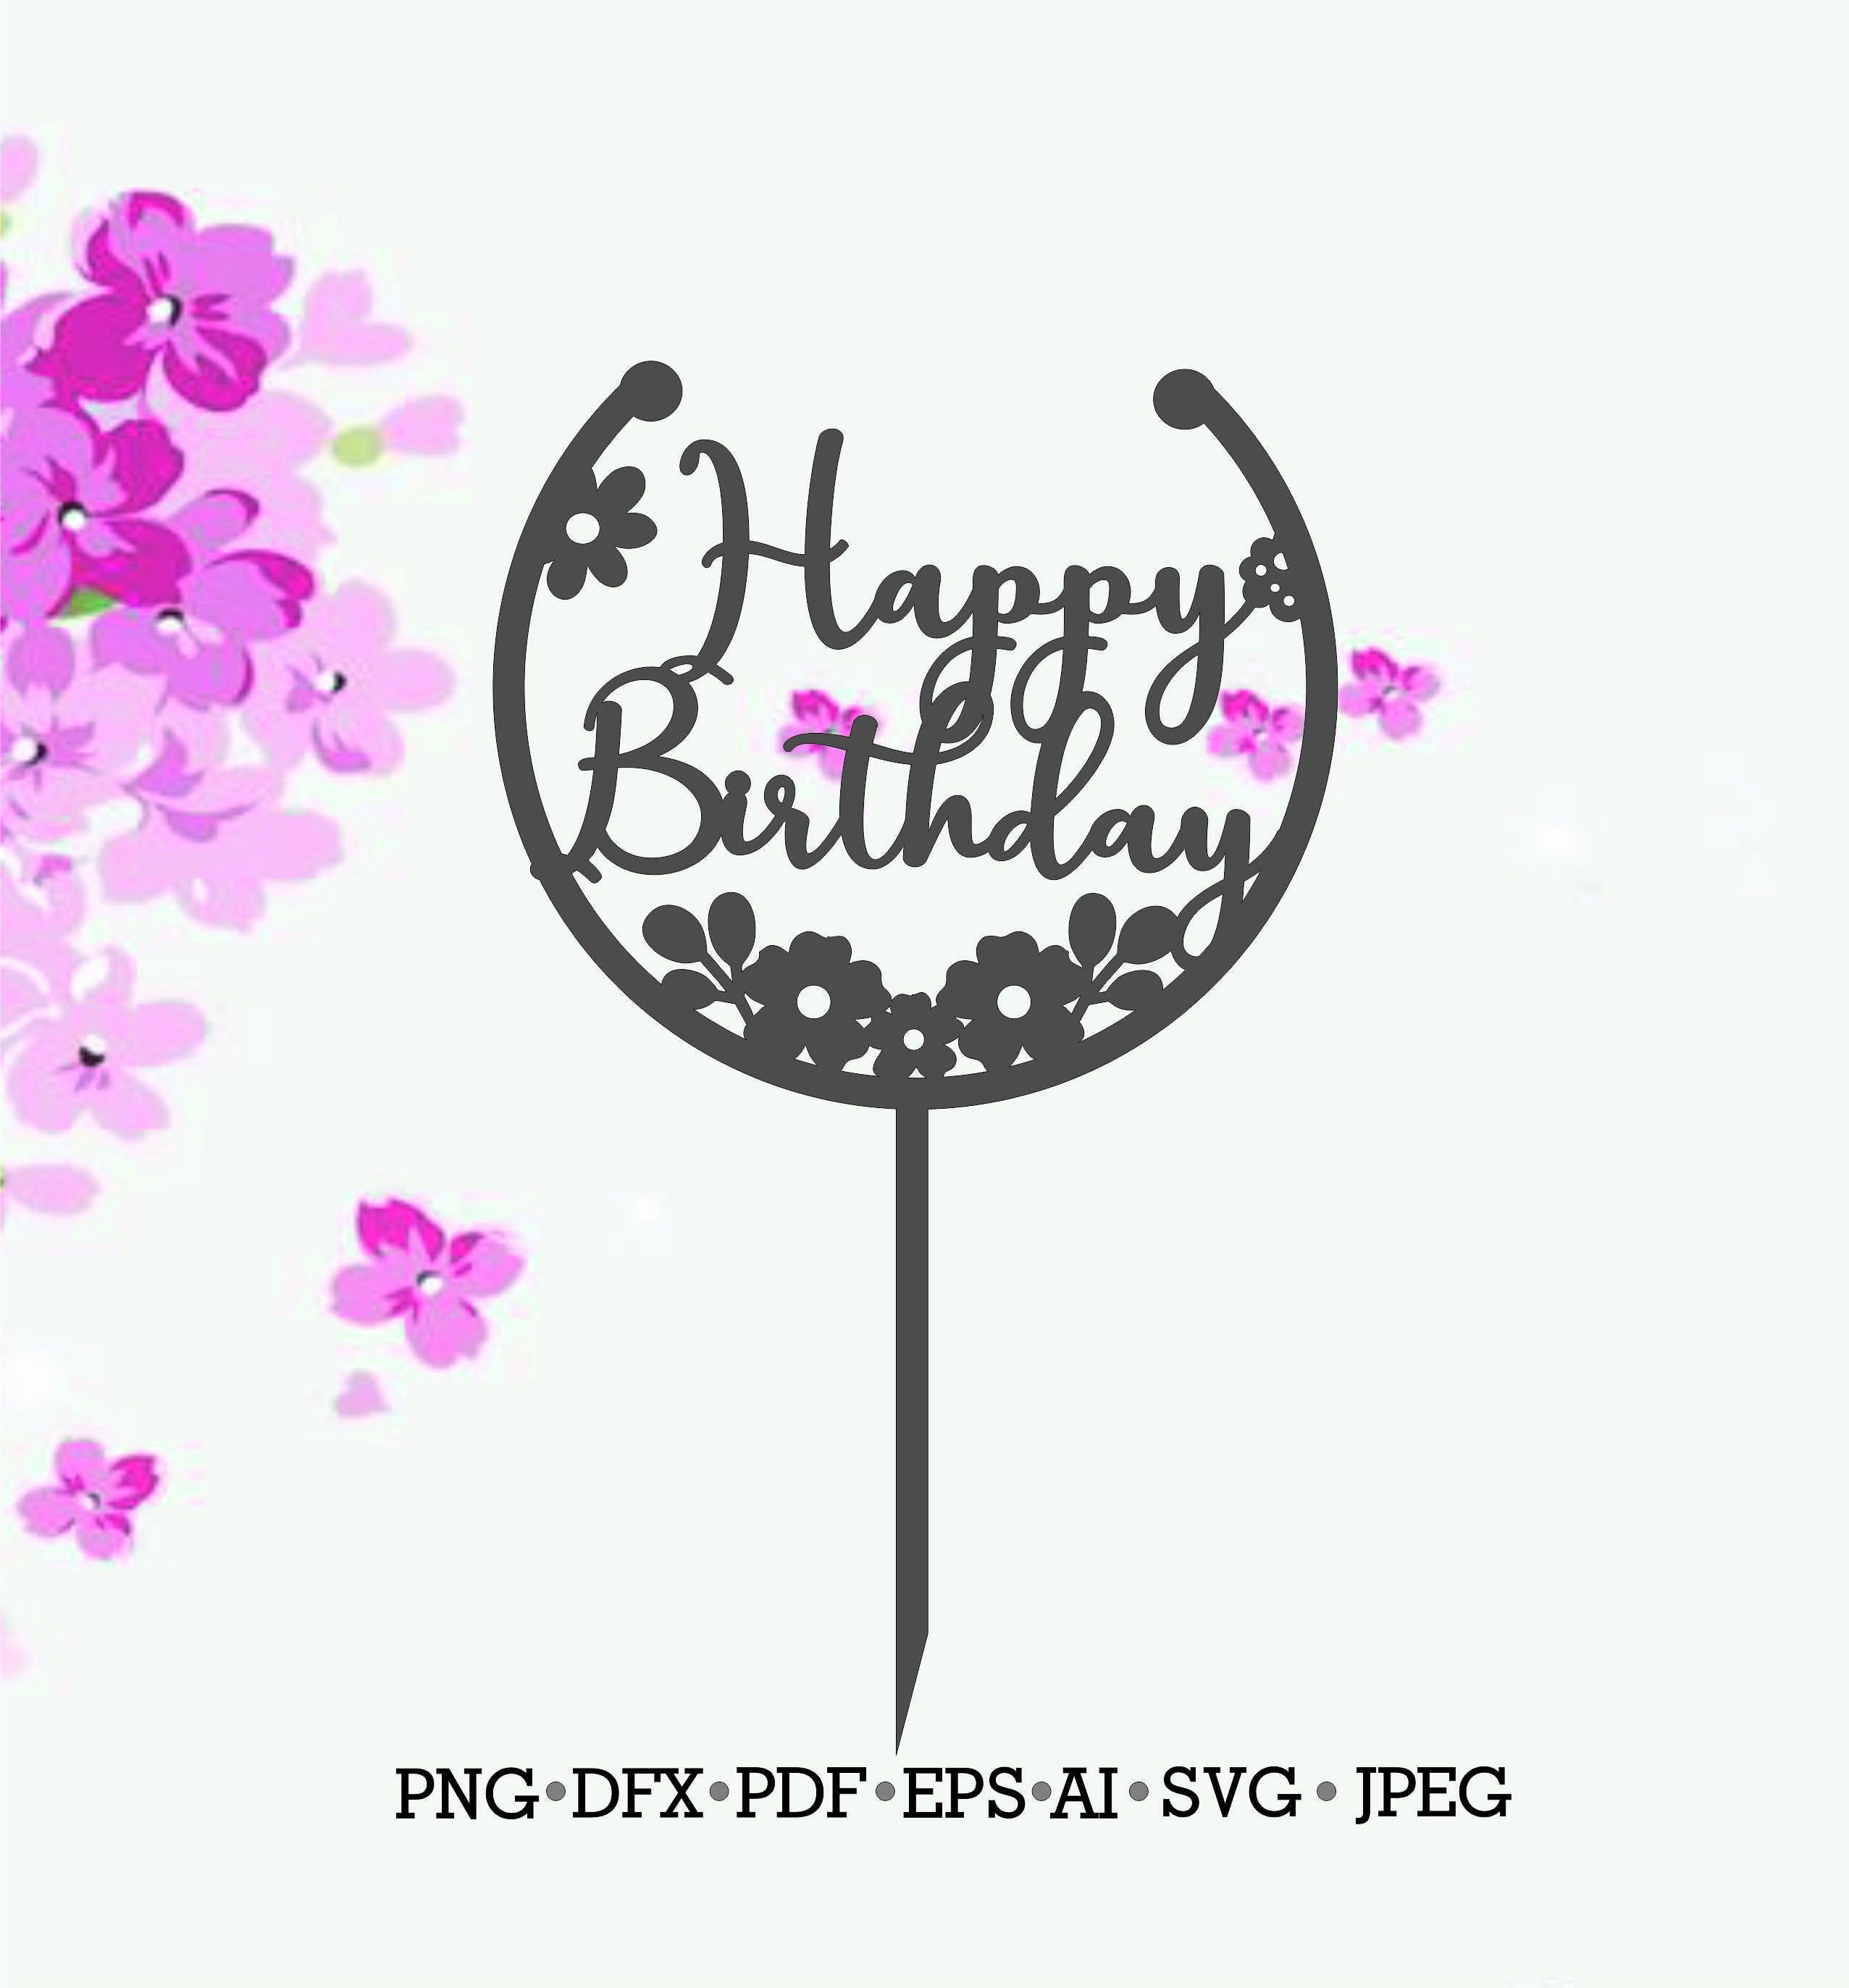 Cake Topper Happy Birthday Svg Cake Topper Vector Cake Etsy Happy Birthday Printable Happy Birthday Cake Topper Cake Toppers